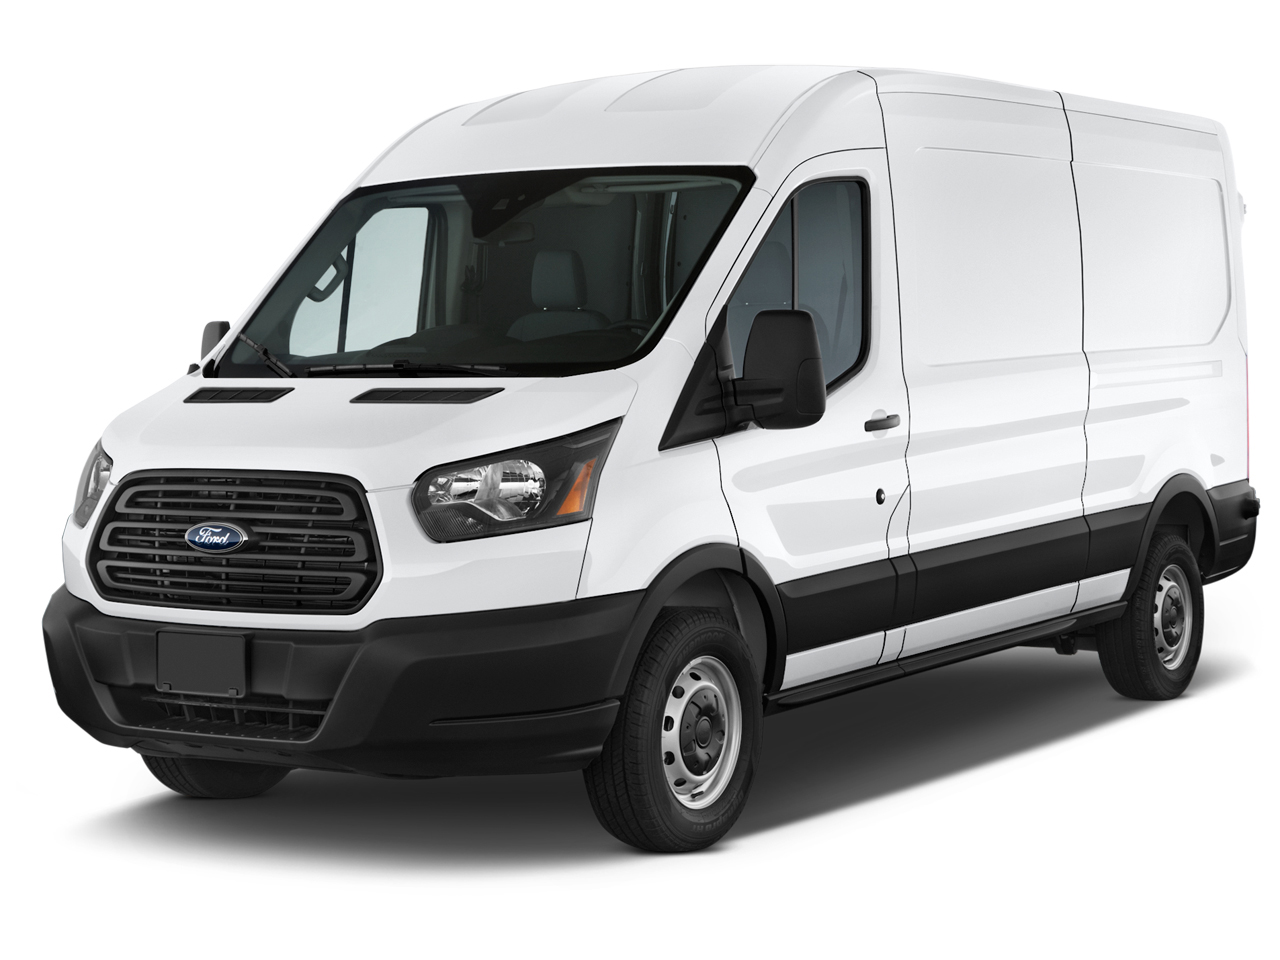 2015 ford transit cargo van review ratings specs prices and photos the car connection. Black Bedroom Furniture Sets. Home Design Ideas